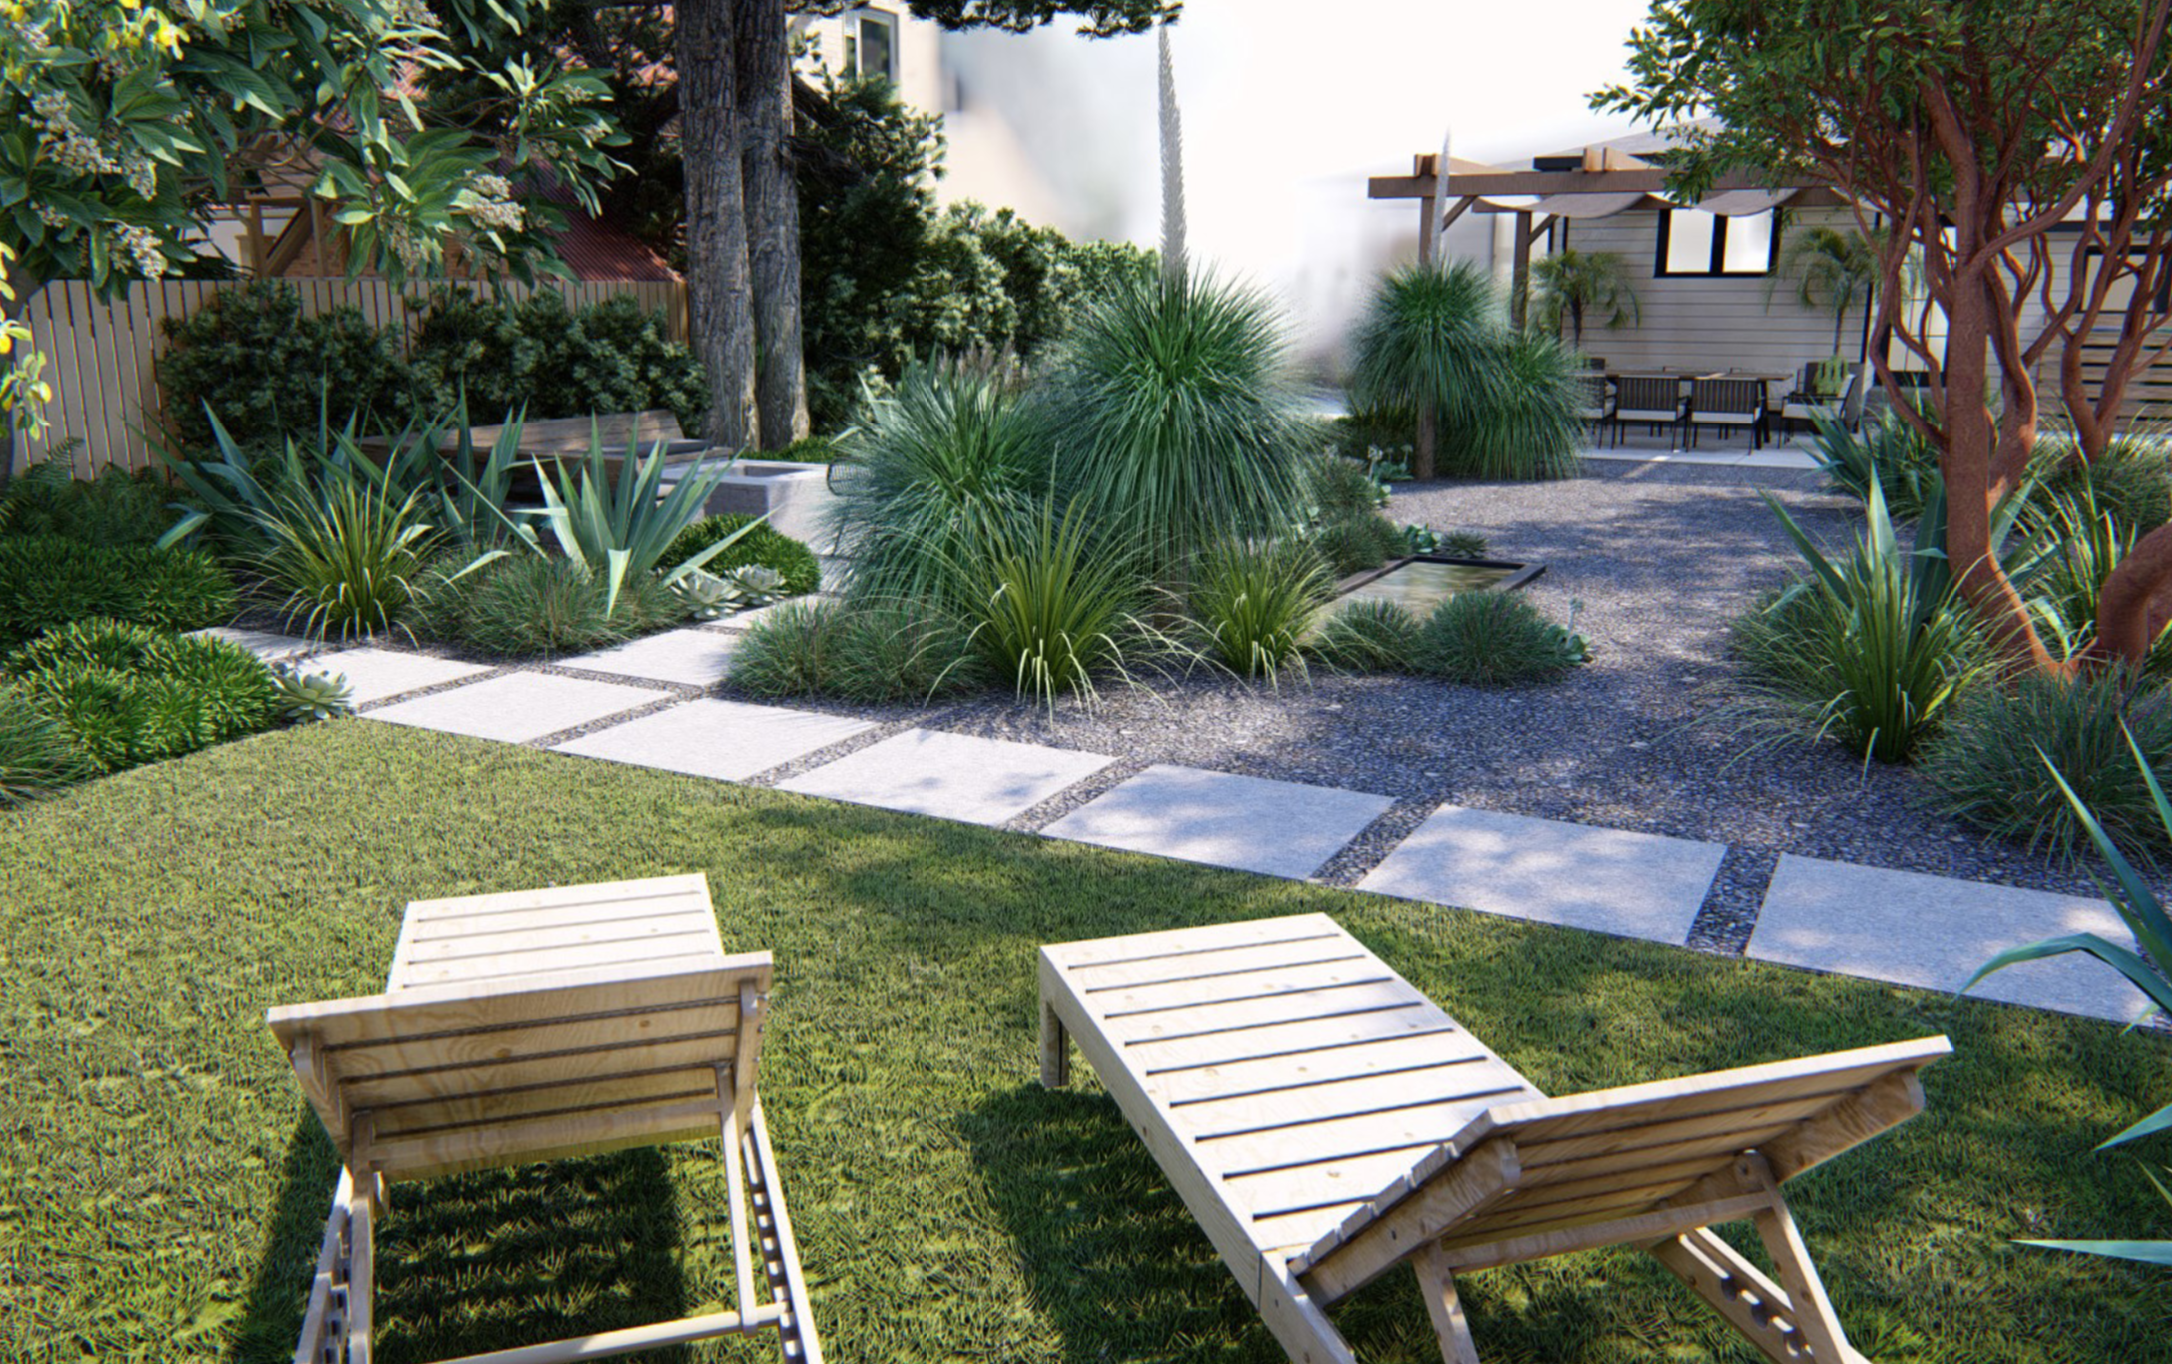 Saletnik and Vesely wanted a synthetic lawn area for their dog, Jasmine, to play. This lawn area is at the back of the property and also makes a good spot for two lounge chairs.